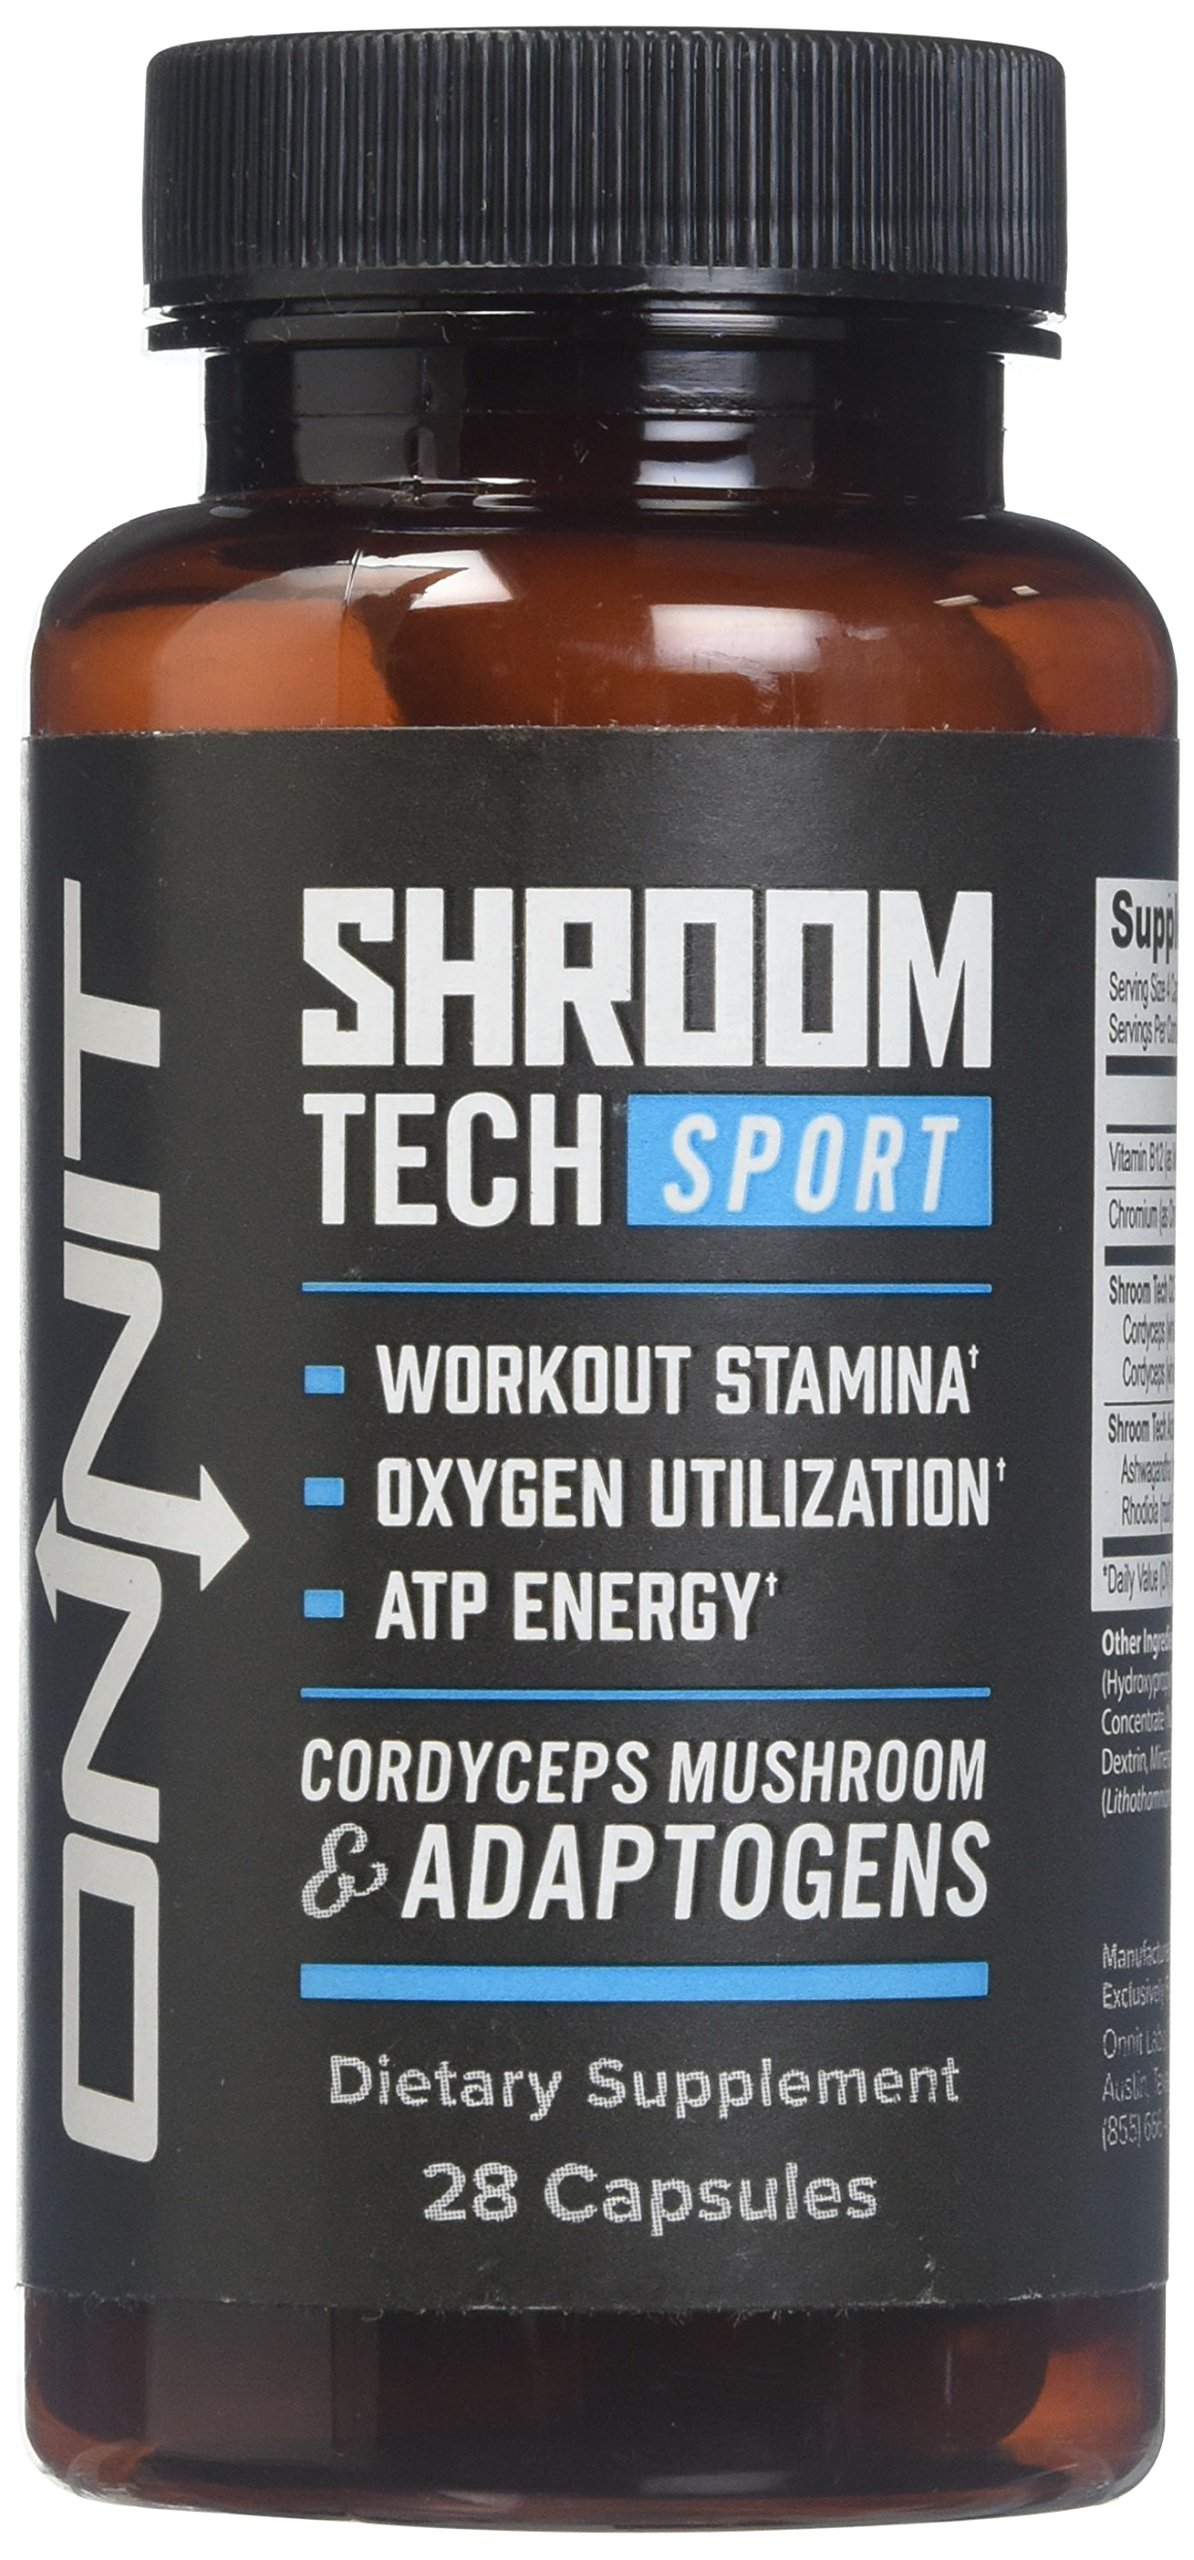 Onnit Shroom TECH Sport (28ct) | All Natural Pre-Workout Supplement with Ashwagandha, Cordyceps Mushroom, and Rhodiola Rosea